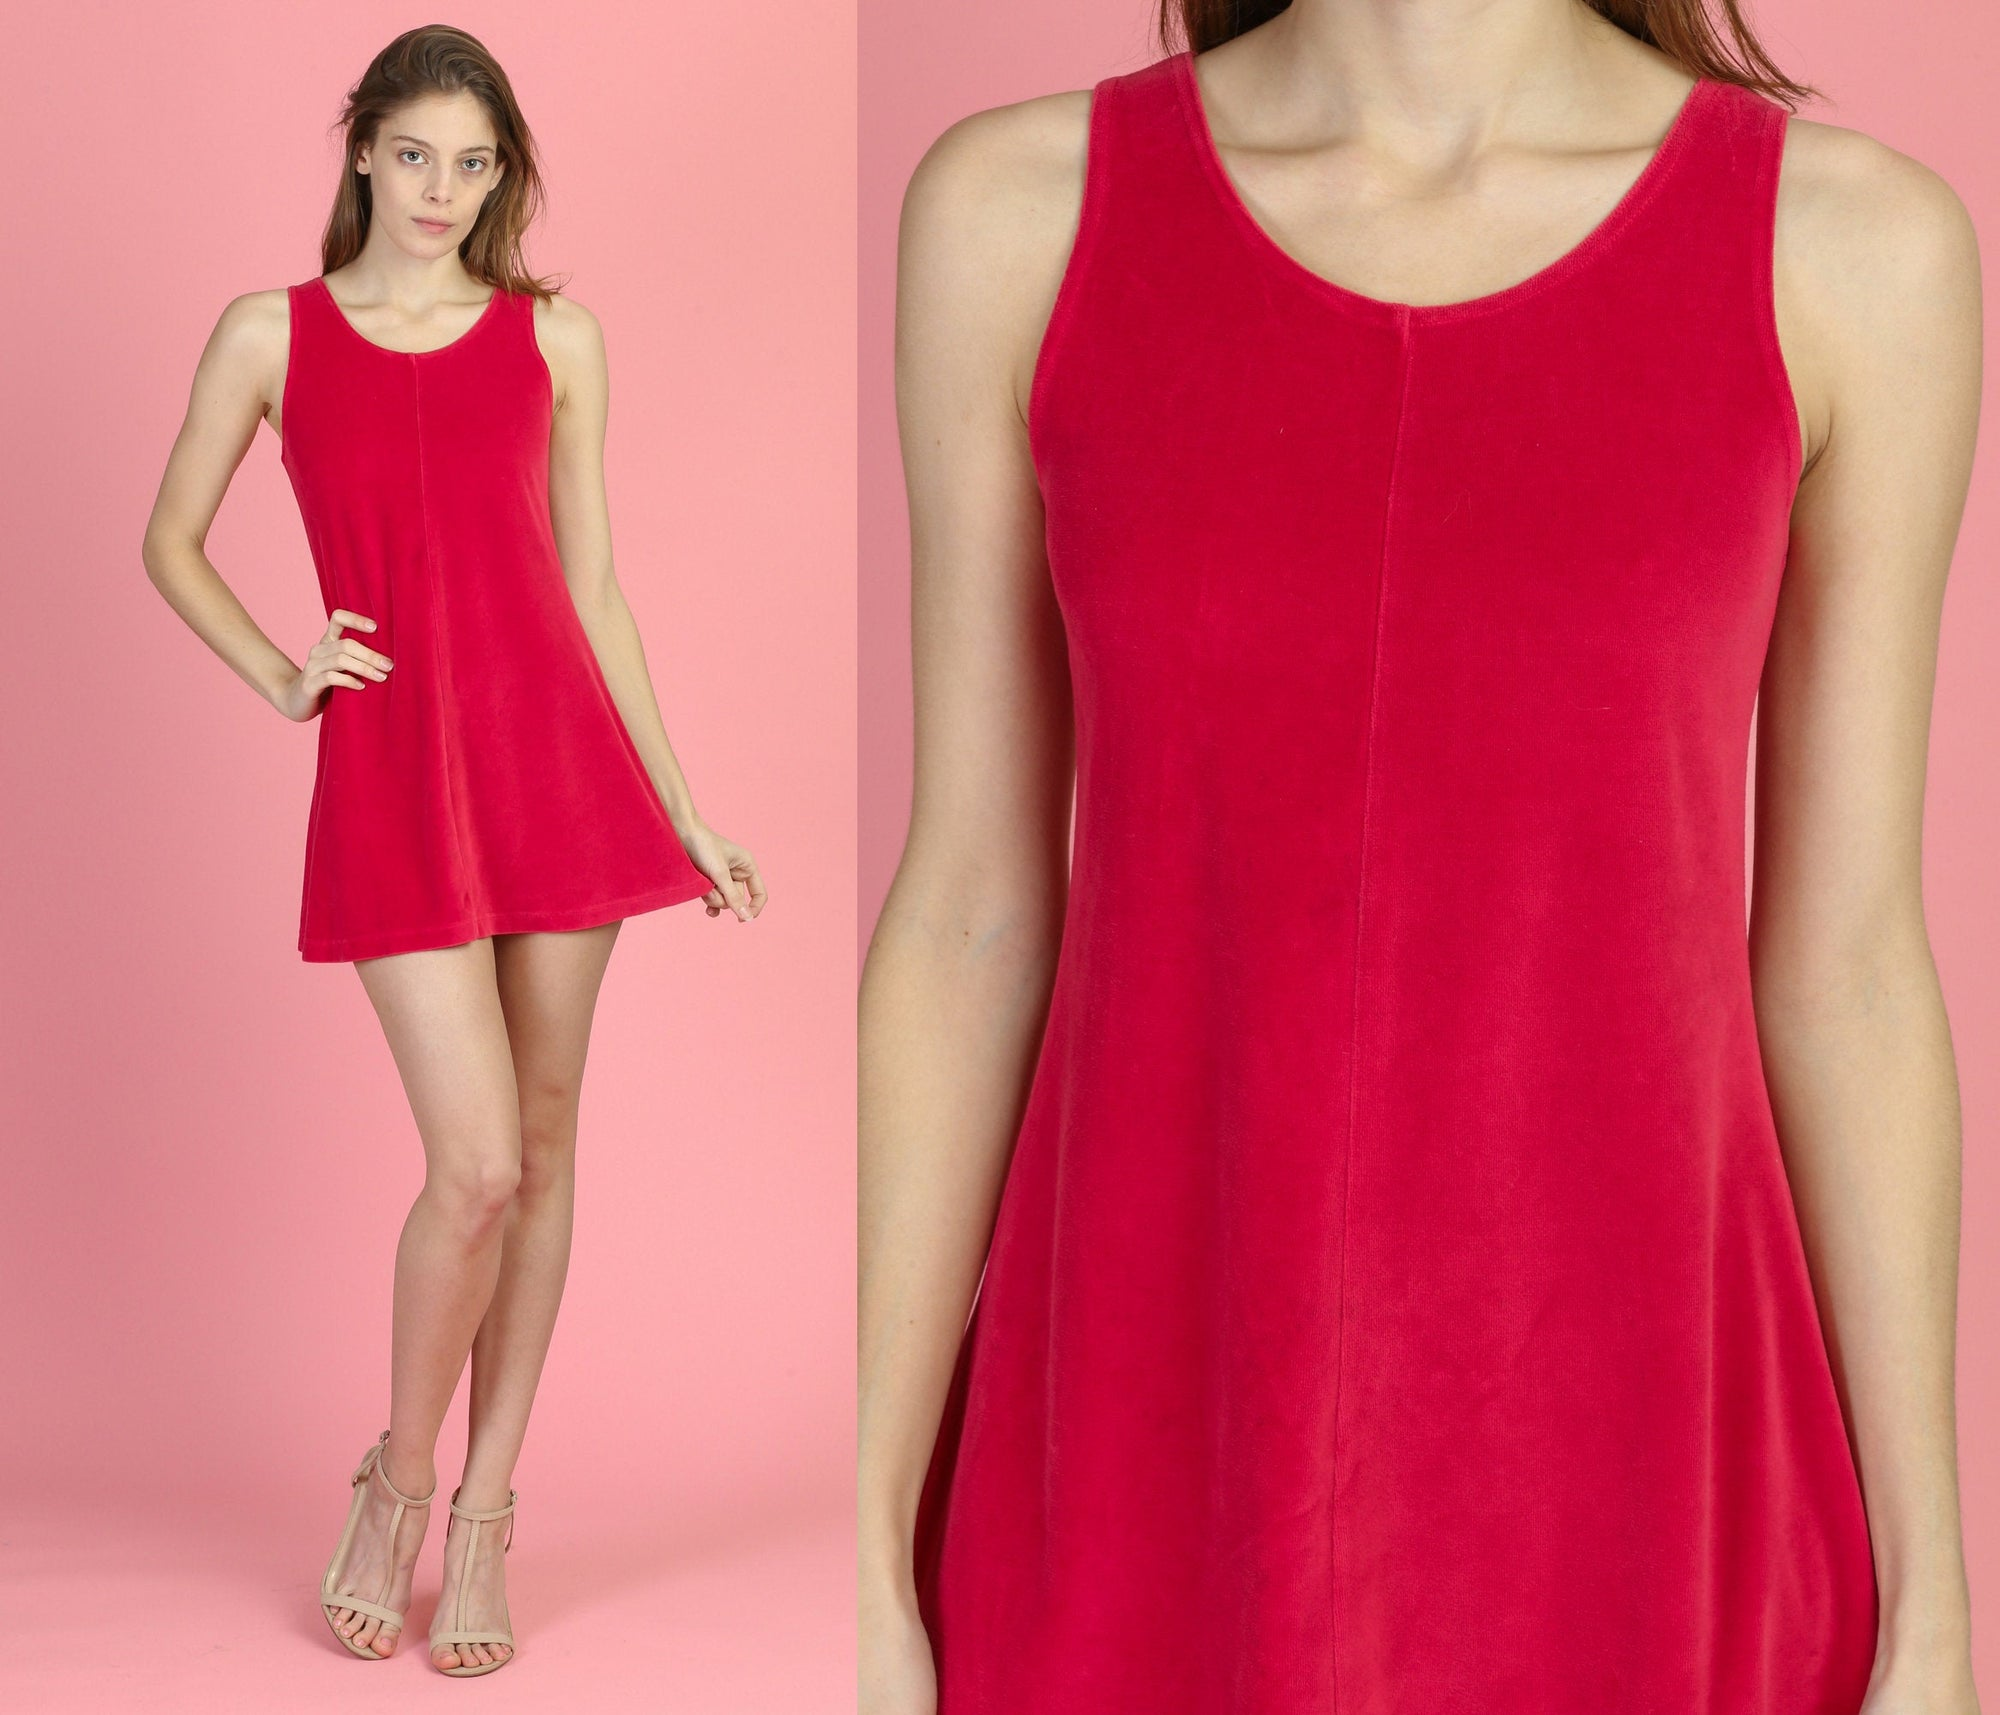 90s Raspberry Velour Mini Dress - Small